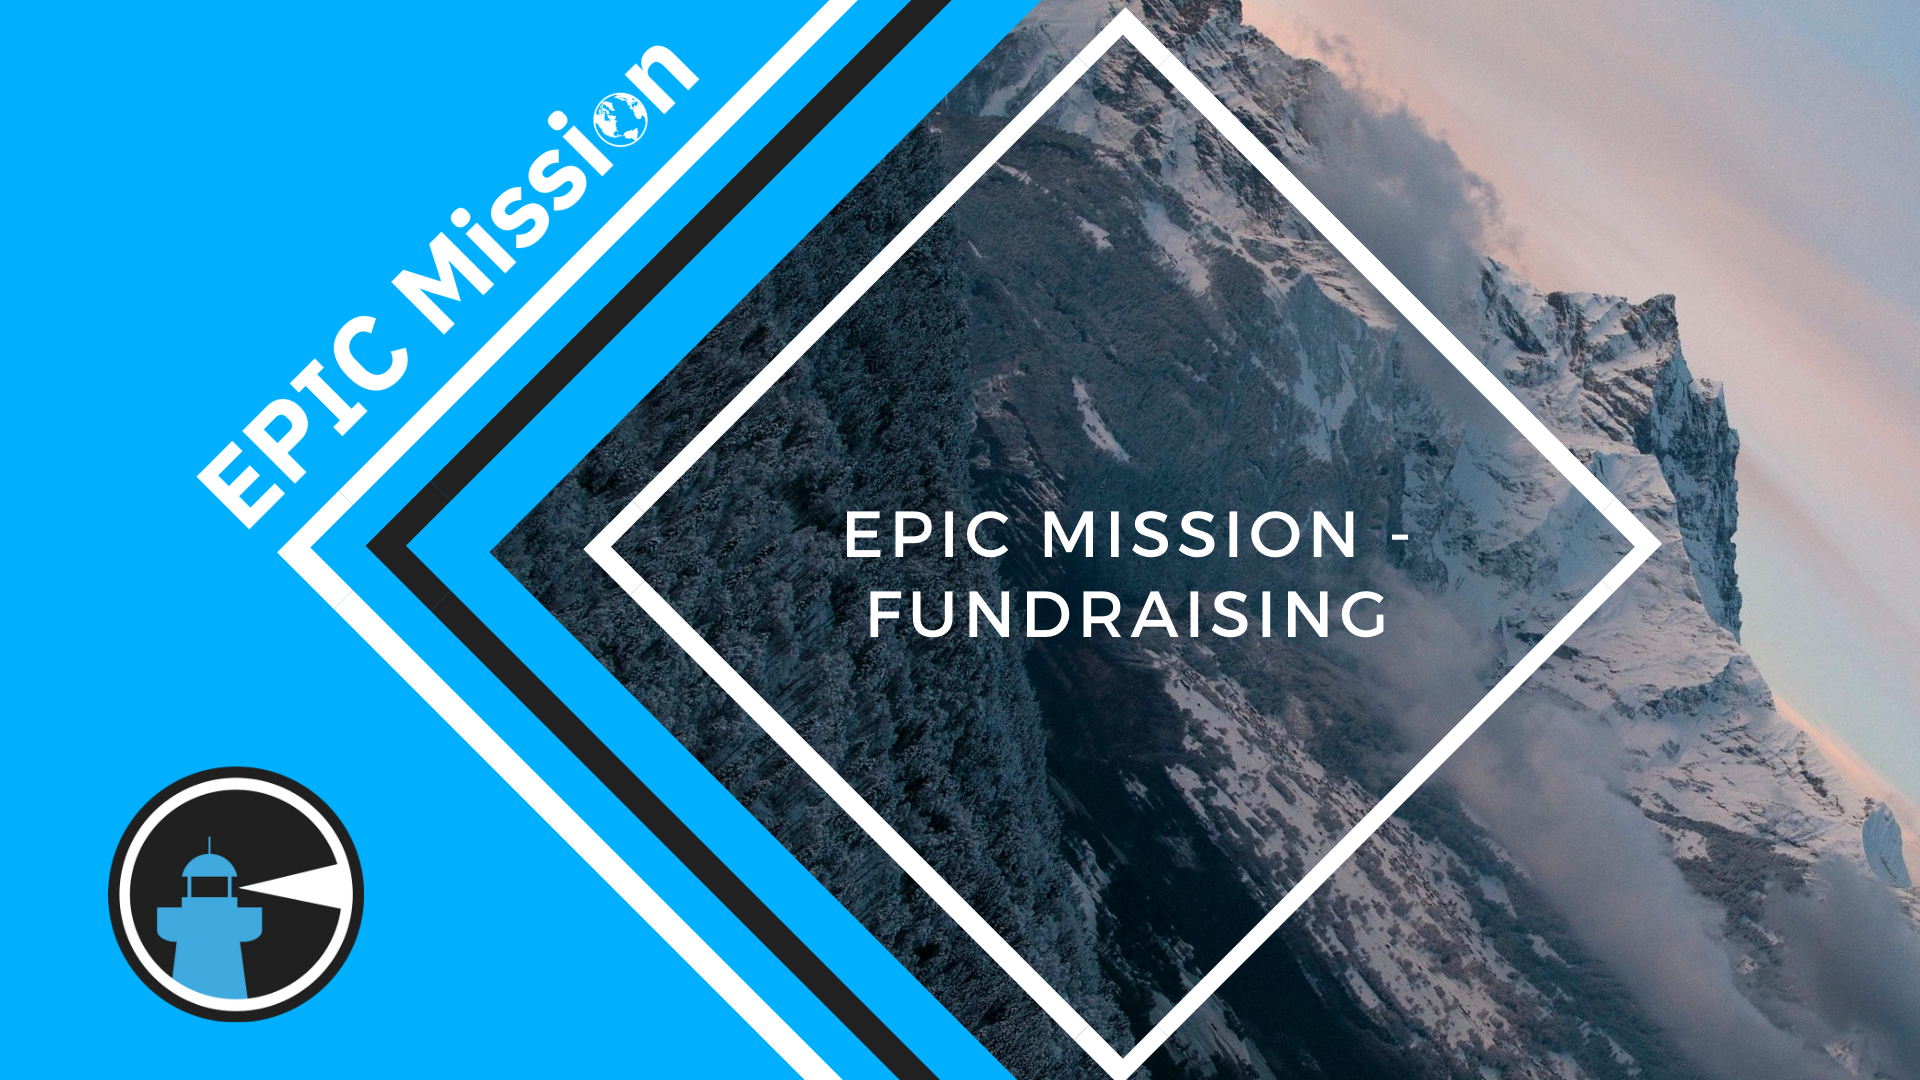 Fundraising - EPIC Mission - Mon Profit Coaching & Consulting Services